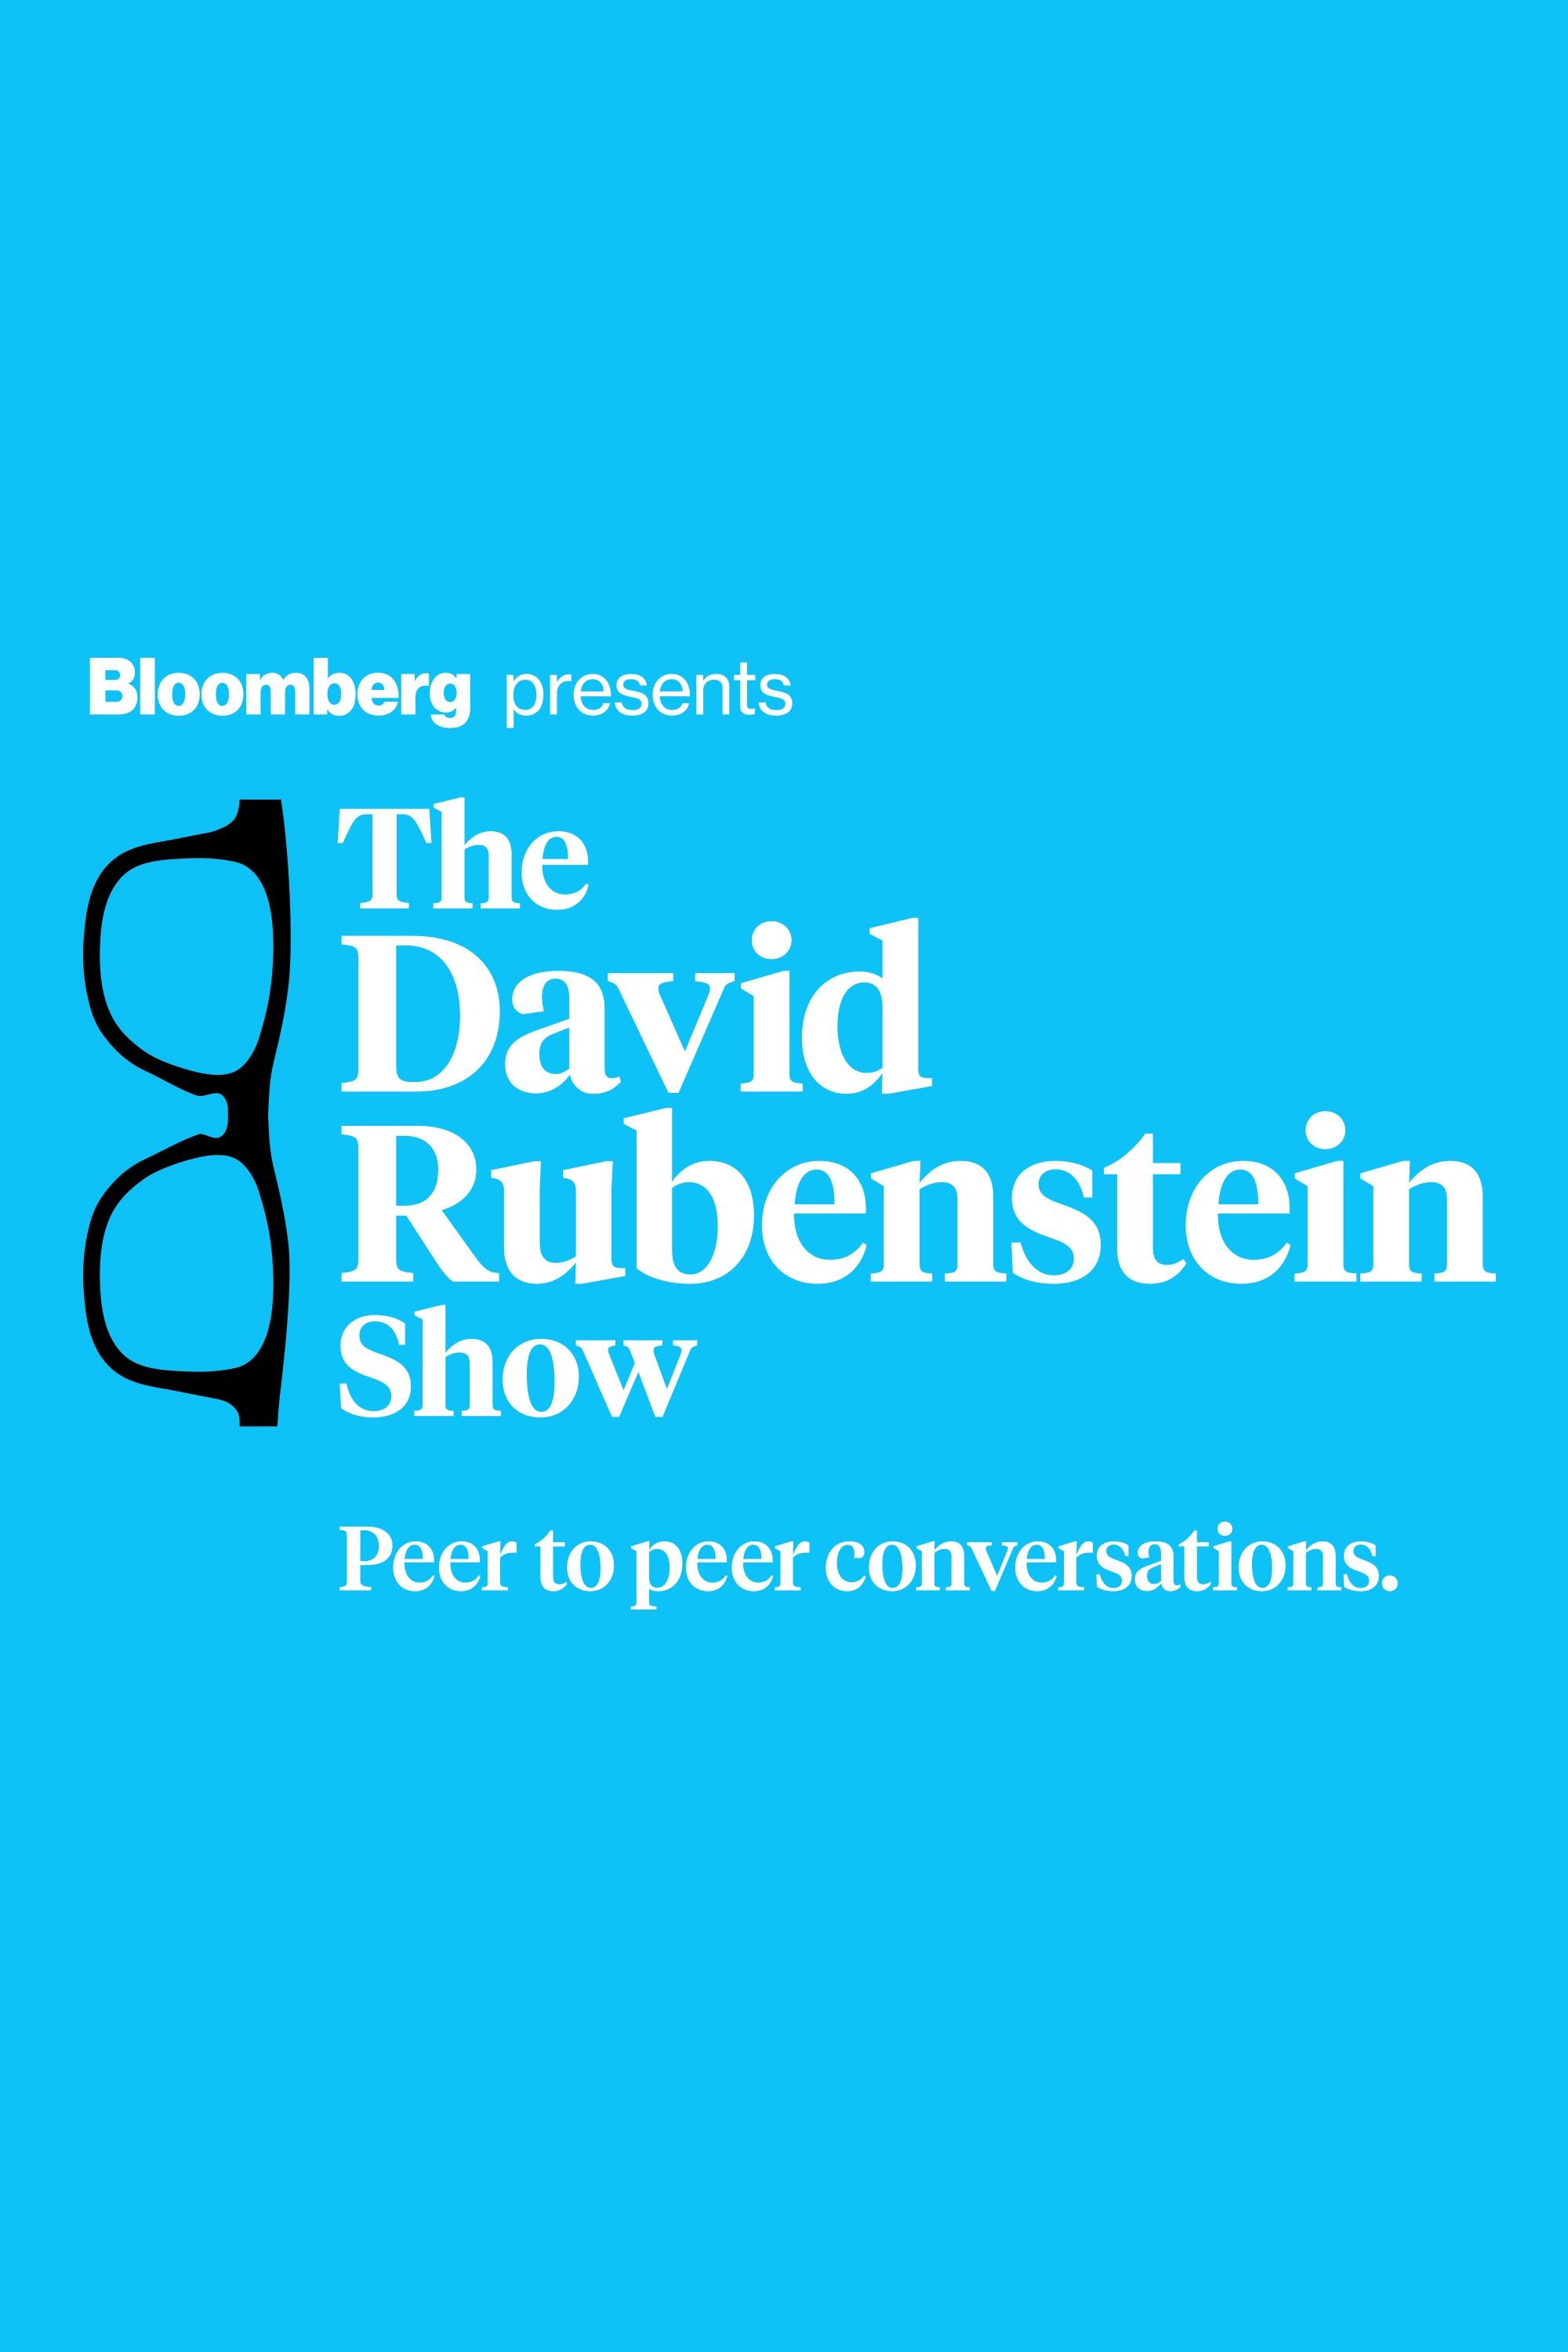 The David Rubenstein Show: Peer to Peer Conversations on FREECABLE TV